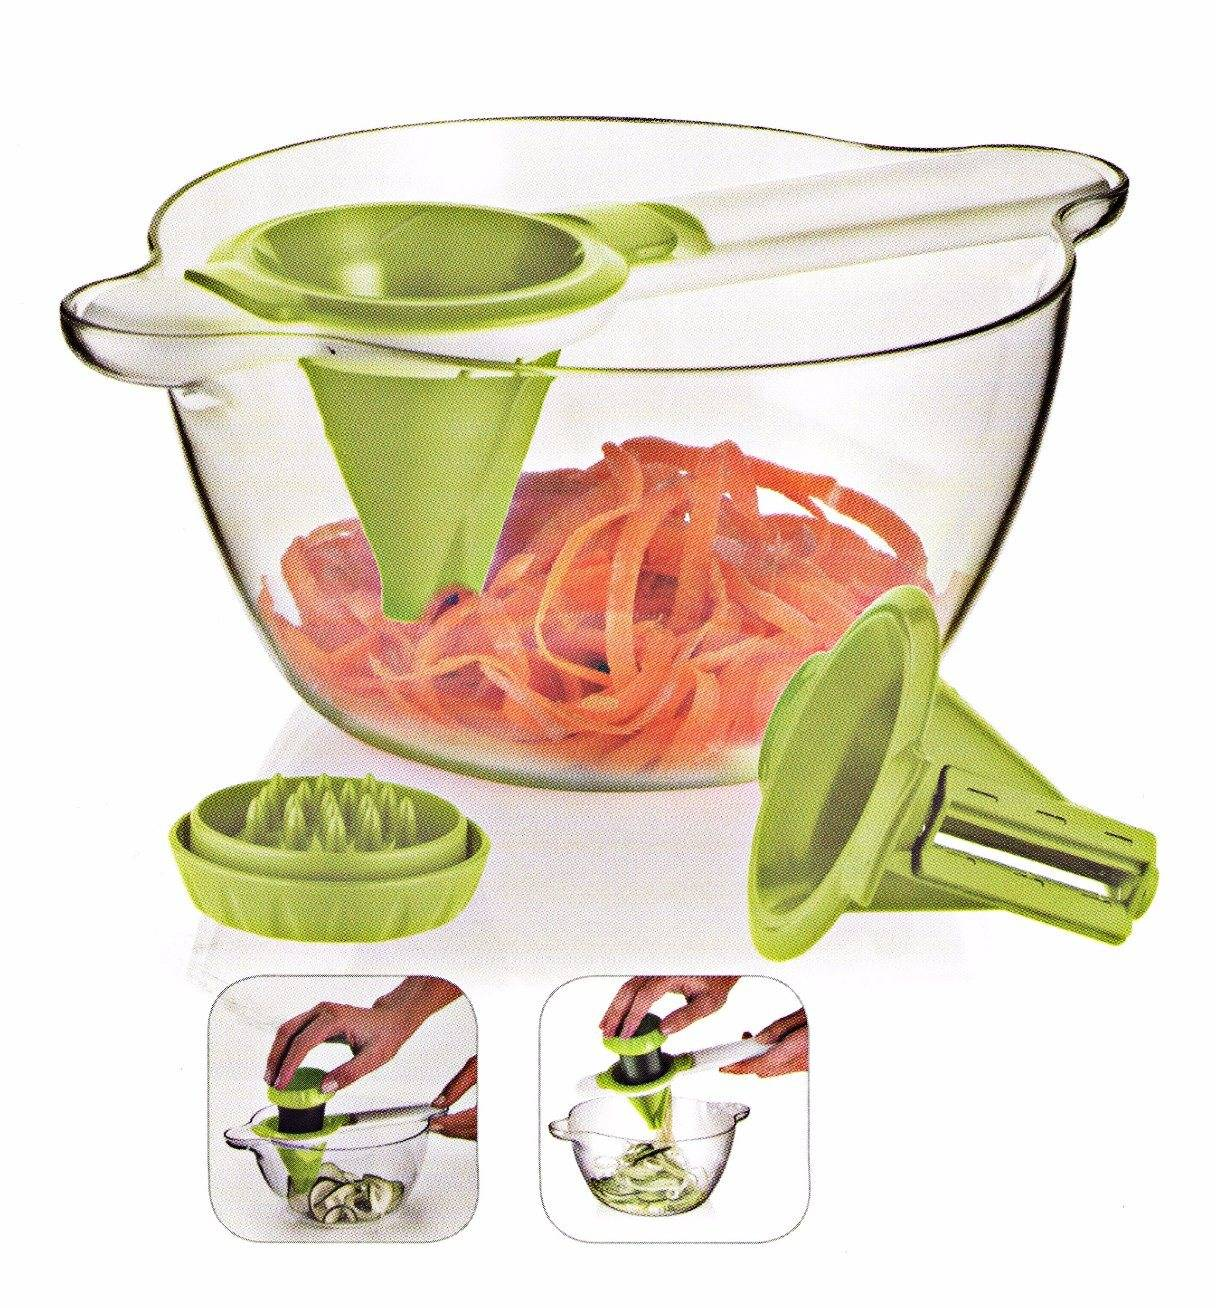 2 in 1 Plastic Food Processor Vegetable Chopper Cutting Machine Cg026